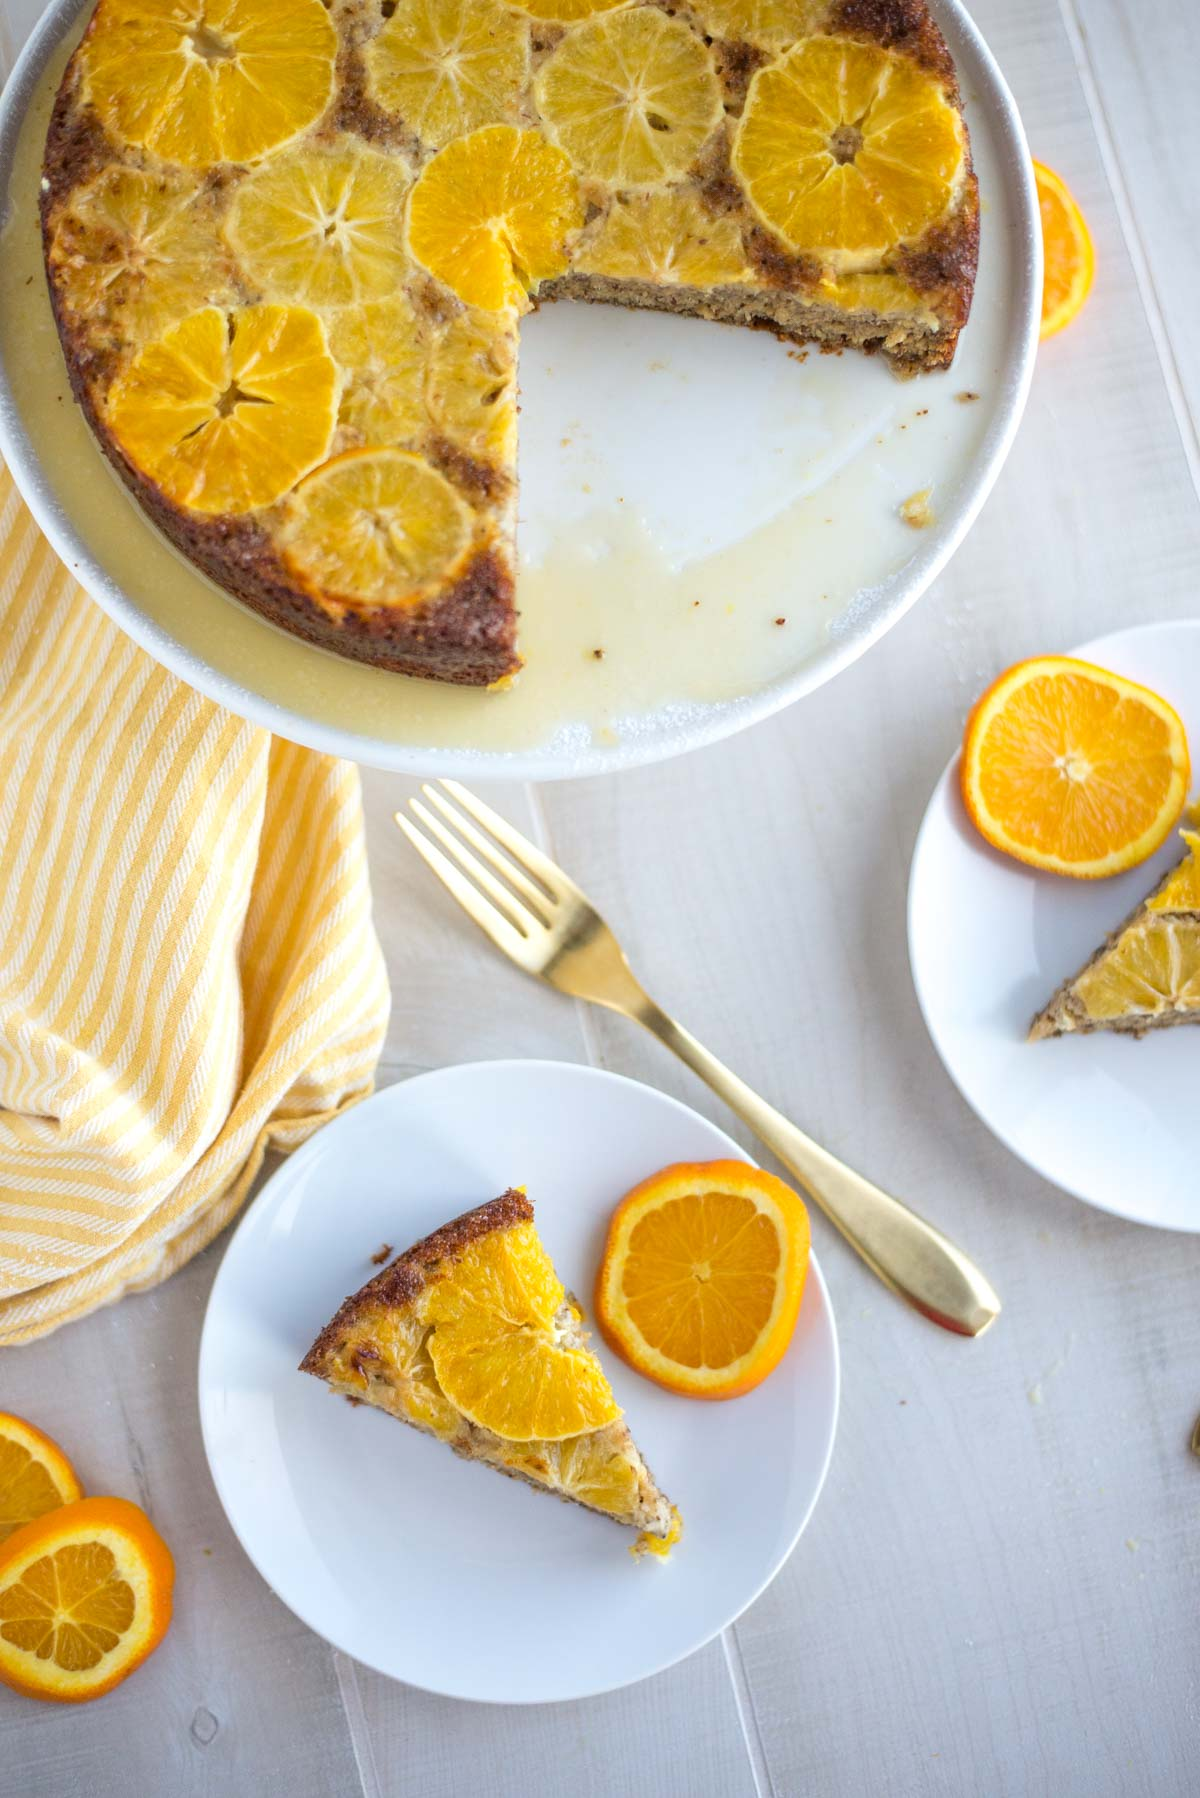 This moist grain-free cake is so delicious you won't realize it's healthy. Check out the superfood line-up.